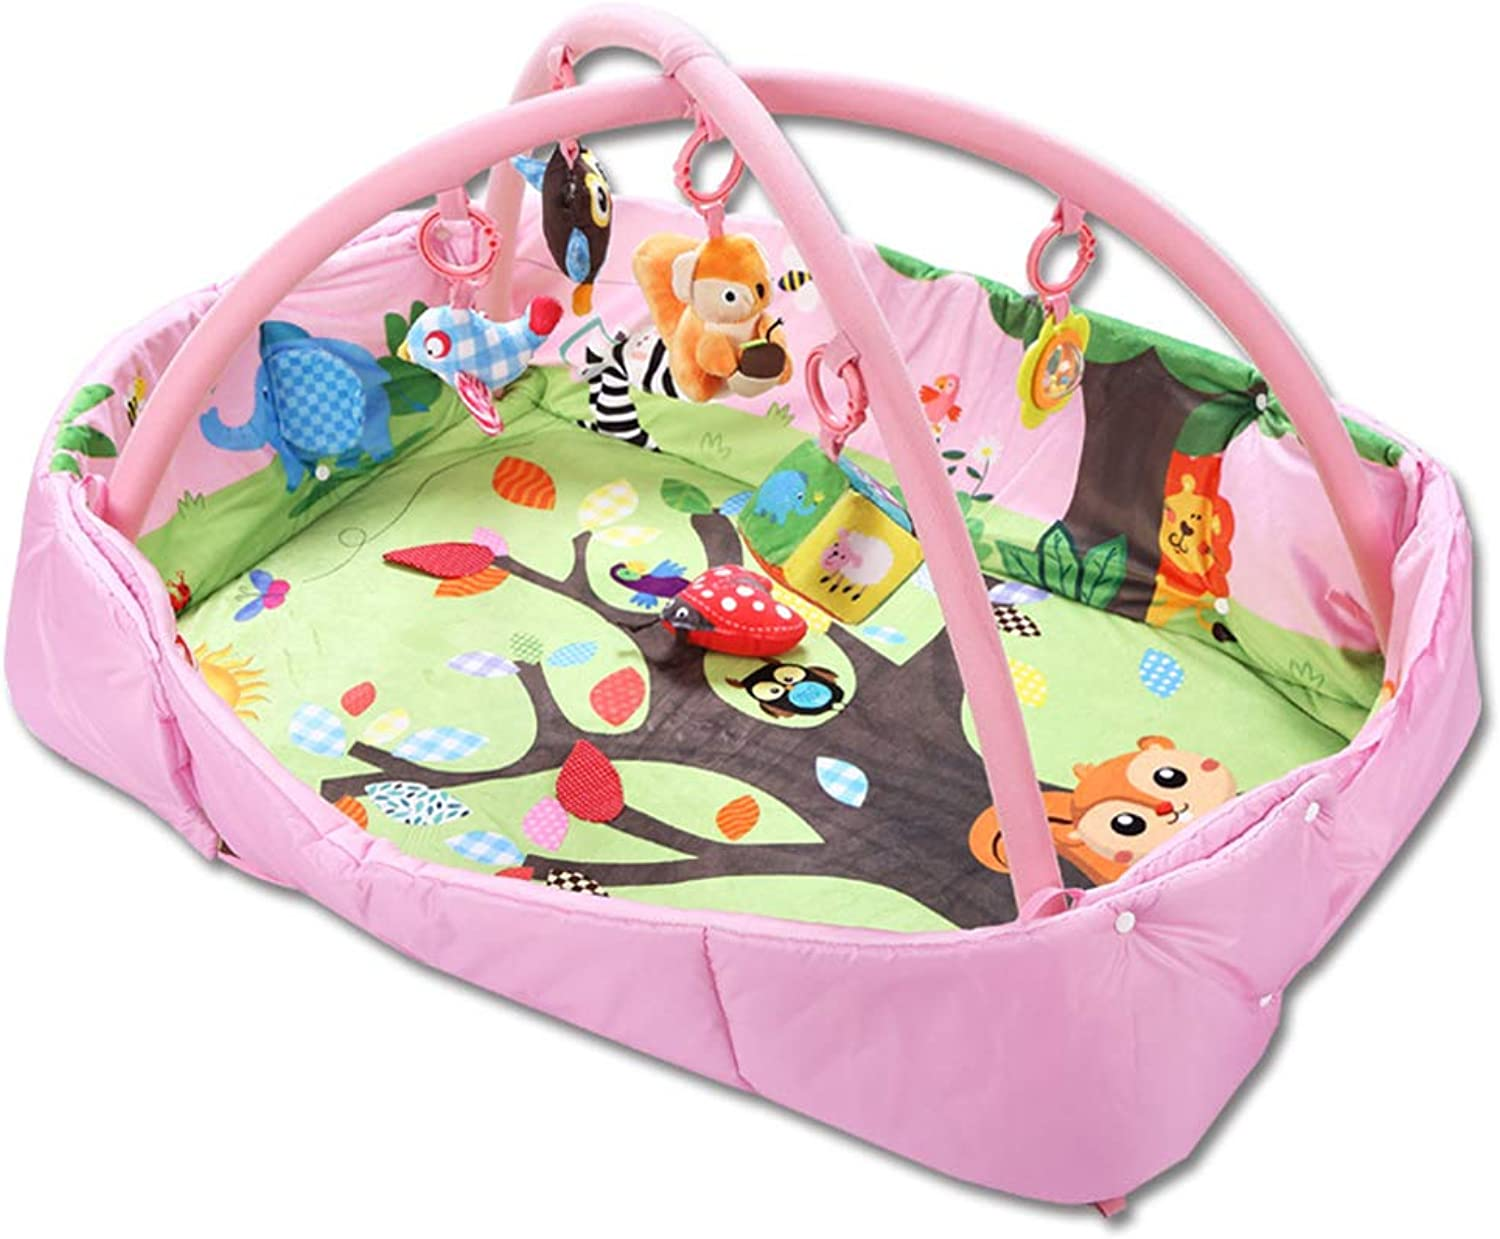 Baby Game pad, Rectangular Squirrel Foldable Portable 0-1 Years Old Puzzle Multi-Function Toy Baby Fitness Rack Crawling mat Game Blanket, Suitable for Bedroom Living Room Baby Room